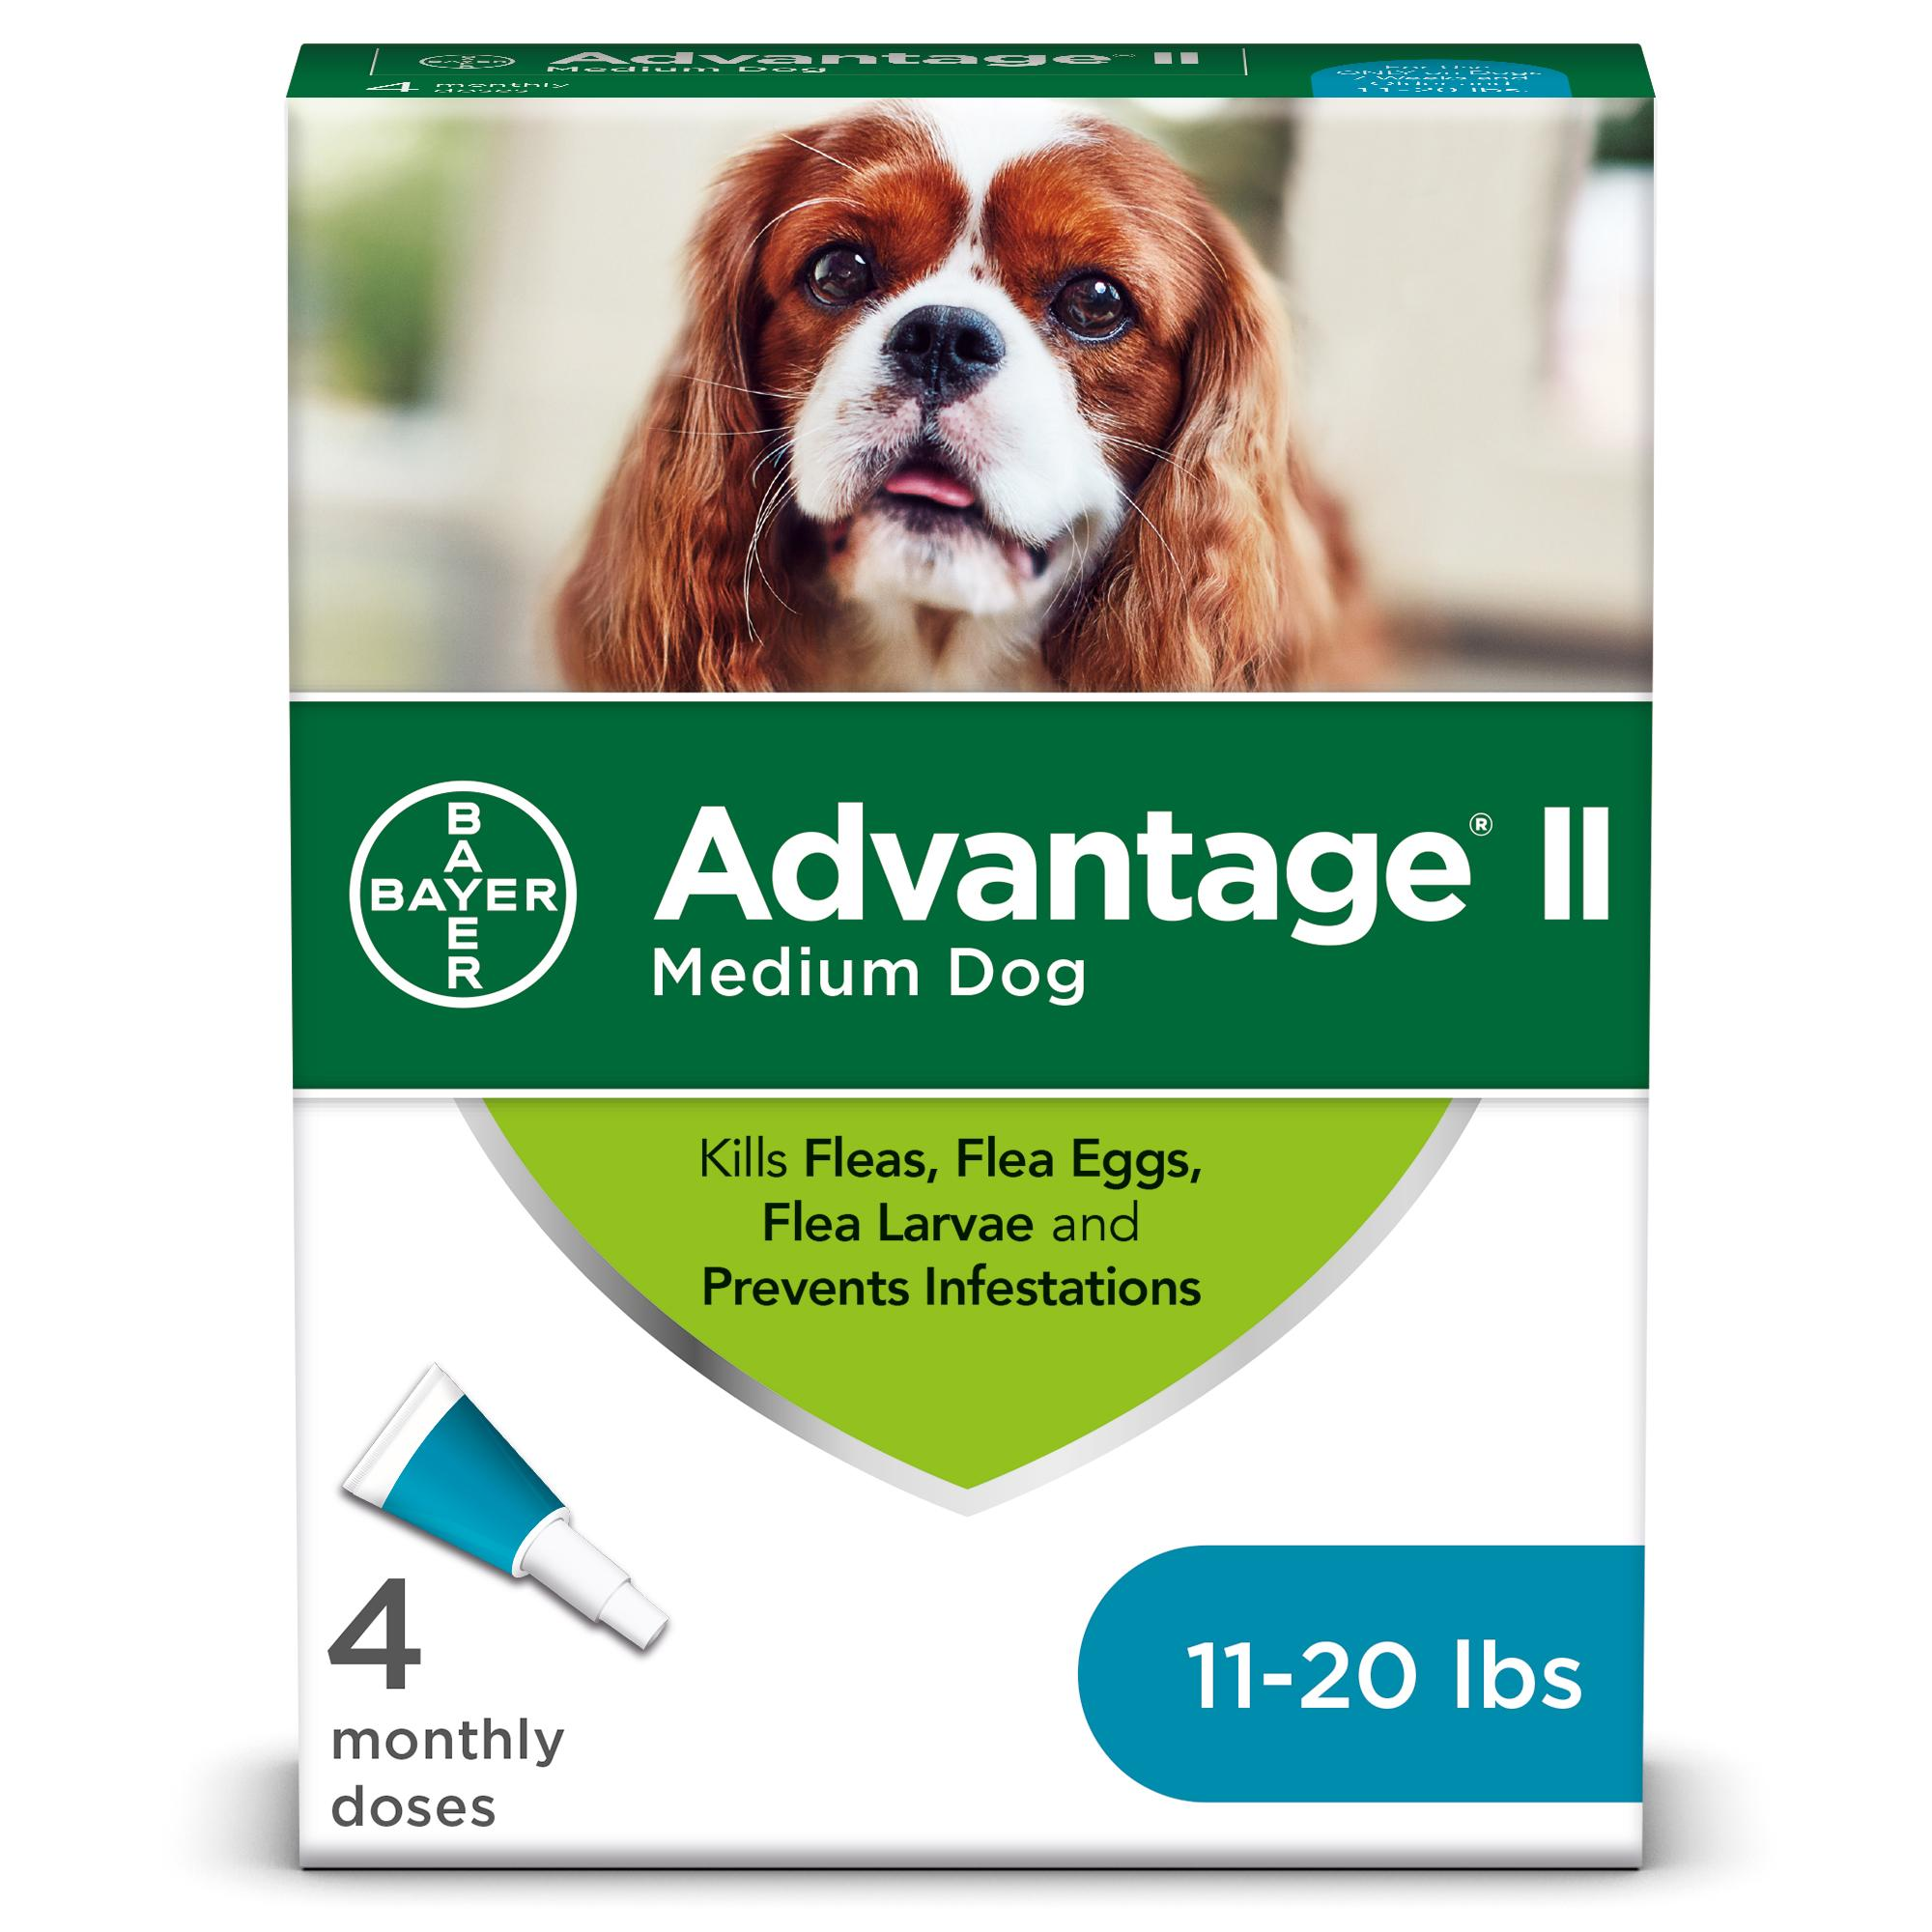 Advantage II Flea Treatment for Medium Dogs 11-20 lbs, 4-pack (Size: 4-pack, Size: 4-pack) Image